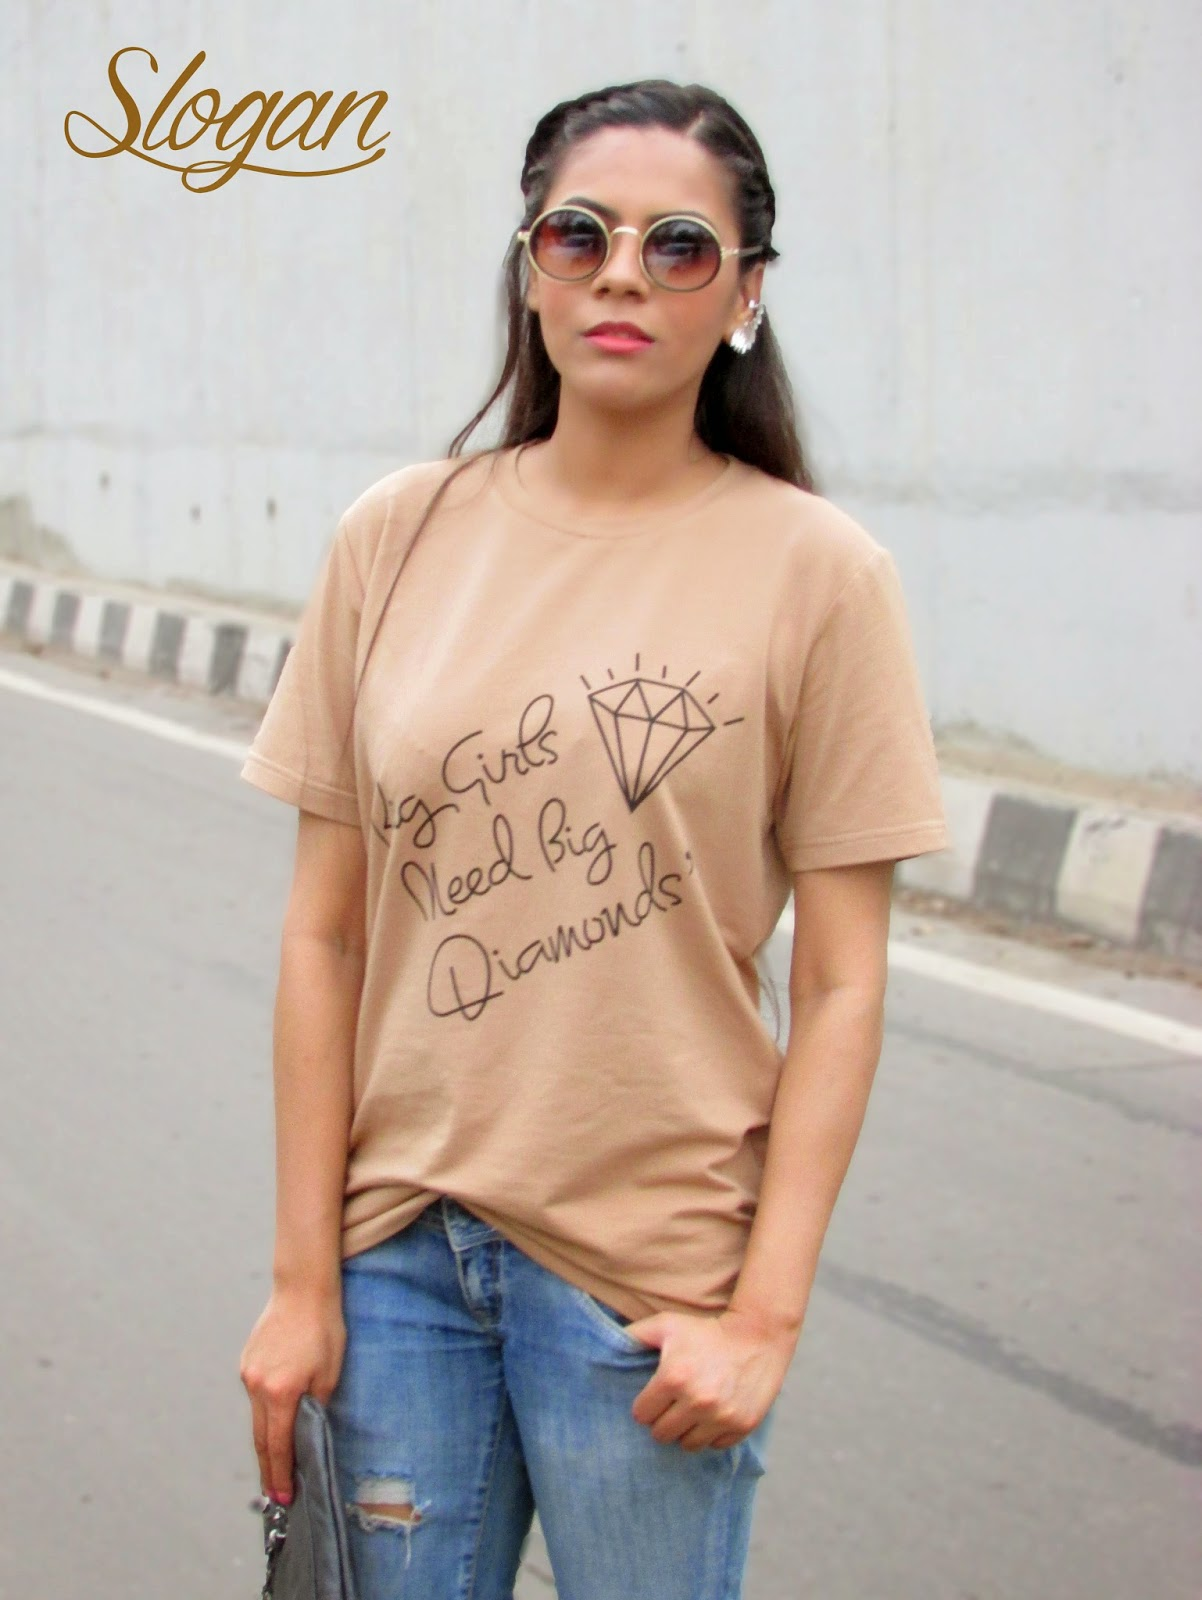 t-shirt , slogan tshirt , tshirt , tee, slogan tee , diamonds , girls and diamonds , diamond tshirt , big diamond, big diamonfd for girls, indian , indian beauty blogger , indian fashion blogger , indian fashion , indian beauty , indian blog , indian fashion blog , blogger, hindi slogan tshirts, funny slogan tshirts, cute slogan tshirts, Leopard, leopard print, leopard print coat, leopard print shoes, leopard print sweatshirt, leopard print loafers, leopard print shirt, leopard print top, leopard print trench coat, leopard print leggings, leopard print heels, leopard print pumps, leopard print wallet, leopard print bag, leopard print sling bag , leopard print furry coat, leopard print sweater, leopard print pullover, leopard print cardigan, leopard shoes, leopard sweatshirt, leopard loafers, leopard shirt, leopard top, leopard trench coat, leopard leggings, leopard heels, leopard pumps, leopard wallet, leopard bag, leopard sling bag , leopard furry coat, leopard sweater, leopard pullover, leopard cardigan, front row shop leopard print shoes, front row shop leopard print sweatshirt, front row shop leopard print loafers, front row shop front row shop leopard print shirt, front row shop leopard print top, front row shop leopard print trench coat, front row shop leopard print leggings, front row shop leopard print heels, front row shop leopard print pumps, front row shop leopard print wallet, front row shop leopard print bag, front row shop leopard print sling bag ,front row shop leopard print furry coat, front row shop leopard print sweater, front row shop leopard print pullover, front row shop leopard print cardigan, Cheap leopard print shoes, Cheap leopard print sweatshirt, Cheap leopard print loafers, Cheap leopard print shirt, Cheap leopard print top, Cheap leopard print trench coat, Cheap leopard print leggings, Cheap leopard print heels, Cheap leopard print pumps, Cheap leopard print wallet, Cheap leopard print bag, Cheap leopard print sling bag , Cheap leopard print furry coat, Cheap leopard print sweater, Cheap leopard print pullover, Cheap leopard print cardigan, Velvet, velvet top, velvet skirt, velvet dress, velvet clothes, velvet jacket, velvet coat, velvet skater skirt, velvet full sleeves top, velvet tshirt , velvet shirt, Blue Velvet, blue velvet top, blue velvet skirt, blue velvet dress, blue velvet clothes,blue velvet jacket, blue velvet coat, blue velvet skater skirt, blue velvet full sleeves top, blue velvet tshirt , blue velvet shirt, FrontRowshop Velvet, FrontRowshop velvet top, FrontRowshop velvet skirt, FrontRowshop velvet dress, FrontRowshop velvet clothes,FrontRowshop  velvet jacket, FrontRowshop velvet coat, FrontRowshop velvet skater skirt, FrontRowshop velvet full sleeves top, FrontRowshop velvet tshirt , FrontRowshop velvet shirt,Velvet price , velvet top price, velvet skirtprice , velvet dress price , velvet clothes  price , velvet jacket price, velvet coat price, velvet skater skirt price, velvet full sleeves top price, velvet tshirt  price ,velvet shirtprice,Pants, snakes pants, fitted pants, printed smokey pants, printed fitted pants, geometric pants, geometric print, geometric print pants, geometric  smokey pants, geometric printed smokey trousers, smokey trousers, printed smokey trousers, trousers, pattern trousers, pattern pants, pattern bottoms, geometric pattern pants, geometric pattern trousers, silver trousers, silver pants, silver smokey pants, glittery pants, glittery silver pants,brocade , brocade pants, brocade trousers, brocade smokey pants, brocade fitted pants, brocade printed pants , brocade geometric pants, brocade geometric pattern pants, brocade geometric print pants, silver brocade pants, silver shinny brocade pants,Wishlist, clothes wishlist, persumall wishlist, frontrowshop, frontrowshop.com, frontrowshop.com wishlist, autumn wishlist,autumn frontrowshop wishlist, autumn clothes wishlist, autumn shoes wishlist, autumn bags wishlist, autumn boots wishlist, autumn pullovers wishlist, autumn cardigans wishlist, autymn coats wishlist, frontrowshop clothes wishlist, frontrowshop bags wishlist, frontrowshop bags wishlist, frontrowshop boots wishlist, frontrowshop pullover wishlist, frontrowshop cardigans wishlist, frontrowshop autum clothes wishlist, winter clothes, wibter clothes wishlist, winter wishlist, wibter pullover wishlist, winter bags wishlist, winter boots wishlist, winter cardigans wishlist, winter leggings wishlist, frontrowshop winter clothes, frontrowshop autumn clothes, frontrowshop winter collection, frontrowshop autumn collection,Cheap clothes online,cheap dresses online, cheap jumpsuites online, cheap leggings online, cheap shoes online, cheap wedges online , cheap skirts online, cheap jewellery online, cheap jackets online, cheap jeans online, cheap maxi online, cheap makeup online, cheap cardigans online, cheap accessories online, cheap coats online,cheap brushes online,cheap tops online, chines clothes online, Chinese clothes,Chinese jewellery ,Chinese jewellery online,Chinese heels online,Chinese electronics online,Chinese garments,Chinese garments online,Chinese products,Chinese products online,Chinese accessories online,Chinese inline clothing shop,Chinese online shop,Chinese online shoes shop,Chinese online jewellery shop,Chinese cheap clothes online,Chinese  clothes shop online, korean online shop,korean garments,korean makeup,korean makeup shop,korean makeup online,korean online clothes,korean online shop,korean clothes shop online,korean dresses online,korean dresses online,cheap Chinese clothes,cheap korean clothes,cheap Chinese makeup,cheap korean makeup,cheap korean shopping ,cheap Chinese shopping,cheap Chinese online shopping,cheap korean online shopping,cheap Chinese shopping website,cheap korean shopping website, cheap online shopping,online shopping,how to shop online ,how to shop clothes online,how to shop shoes online,how to shop jewellery online,how to shop mens clothes online, mens shopping online,boys shopping online,boys jewellery online,mens online shopping,mens online shopping website,best Chinese shopping website, Chinese online shopping website for men,best online shopping website for women,best korean online shopping,best korean online shopping website,korean fashion,korean fashion for women,korean fashion for men,korean fashion for girls,korean fashion for boys,best chinese online shopping,best chinese shopping website,best chinese online shopping website,wholesale chinese shopping website,wholesale shopping website,chinese wholesale shopping online,chinese wholesale shopping, chinese online shopping on wholesale prices, clothes on wholesale prices,cholthes on wholesake prices,clothes online on wholesales prices,online shopping, online clothes shopping, online jewelry shopping,how to shop online, how to shop clothes online, how to shop earrings online, how to shop,skirts online, dresses online,jeans online, shorts online, tops online, blouses online,shop tops online, shop blouses online, shop skirts online, shop dresses online, shop botoms online, shop summer dresses online, shop bracelets online, shop earrings online, shop necklace online, shop rings online, shop highy low skirts online, shop sexy dresses onle, men's clothes online, men's shirts online,men's jeans online, mens.s jackets online, mens sweaters online, mens clothes, winter coats online, sweaters online, cardigens online,beauty , fashion,beauty and fashion,beauty blog, fashion blog , indian beauty blog,indian fashion blog, beauty and fashion blog, indian beauty and fashion blog, indian bloggers, indian beauty bloggers, indian fashion bloggers,indian bloggers online, top 10 indian bloggers, top indian bloggers,top 10 fashion bloggers, indian bloggers on blogspot,home remedies, how to,persunmall online shopping,persunmall online shopping review,frontrowshop.com review,frontrowshop online clothing store,frontrowshop online chinese store,frontrowshop online shopping,frontrowshop site review,frontrowshop.com site review, frontrowshop Chines fashion, frontrowshop , frontrowshop.com, frontrowshop clothing, frontrowshop dresses, frontrowshop shoes, frontrowshop accessories,frontrowshop men cloths ,frontrowshop makeup, frontrowshop helth products,frontrowshop Chinese online shopping, frontrowshop Chinese store, frontrowshop online chinese shopping, frontrowshopchinese shopping online,frontrowshop, frontrowshop dresses, frontrowshop clothes, frontrowshop garments, frontrowshop clothes, frontrowshop skirts, frontrowshop pants, frontrowshop tops, frontrowshop cardigans, frontrowshop leggings, frontrowshop fashion , frontrowshop clothes fashion, frontrowshop footwear, frontrowshop fashion footwear, frontrowshop jewellery, frontrowshop fashion jewellery, frontrowshop rings, frontrowshop necklace, frontrowshop bracelets, frontrowshop earings,Autumn, fashion, frontrowshop, wishlist,Winter,fall, fall abd winter, winter clothes , fall clothes, fall and winter clothes, fall jacket, winter jacket, fall and winter jacket, fall blazer, winter blazer, fall and winter blazer, fall coat , winter coat, falland winter coat, fall coverup, winter coverup, fall and winter coverup, outerwear, coat , jacket, blazer, fall outerwear, winter outerwear, fall and winter outerwear, woolen clothes, wollen coat, woolen blazer, woolen jacket, woolen outerwear, warm outerwear, warm jacket, warm coat, warm blazer, warm sweater, coat , white coat, white blazer, white coat, white woolen blazer, white coverup, white woolens,frontrowshop online shopping review,frontrowshop.com review,frontrowshop online clothing store,frontrowshop online chinese store,frontrowshop online shopping,frontrowshop site review,frontrowshop.com site review, frontrowshop Chines fashion, persunmall , frontrowshop.com, frontrowshop clothing, frontrowshop dresses, frontrowshop shoes, frontrowshop accessories,frontrowshop men cloths ,frontrowshop makeup, frontrowshop helth products,frontrowshop Chinese online shopping, frontrowshop Chinese store, frontrowshop online chinese shopping, frontrowshopchinese shopping online,frontrowshop, frontrowshop dresses, frontrowshop clothes, frontrowshop garments, frontrowshop clothes, frontrowshop skirts, frontrowshop pants, frontrowshop tops, frontrowshop cardigans, frontrowshop leggings, persunmall fashion , frontrowshop clothes fashion, frontrowshop footwear, frontrowshop fashion footwear, frontrowshop jewellery, frontrowshop fashion jewellery, frontrowshop rings, frontrowshop necklace, frontrowshop bracelets, frontrowshop earings,latest fashion trends online, online shopping, online shopping in india, online shopping in india from america, best online shopping store , best fashion clothing store, best online fashion clothing store, best online jewellery store, best online footwear store, best online store, beat online store for clothes, best online store for footwear, best online store for jewellery, best online store for dresses, worldwide shipping free, free shipping worldwide, online store with free shipping worldwide,best online store with worldwide shipping free,low shipping cost, low shipping cost for shipping to india, low shipping cost for shipping to asia, low shipping cost for shipping to korea,Friendship day , friendship's day, happy friendship's day, friendship day outfit, friendship's day outfit, how to wear floral shorts, floral shorts, styling floral shorts, how to style floral shorts, how to wear shorts, how to style shorts, how to style style denim shorts, how to wear denim shorts,how to wear printed shorts, how to style printed shorts, printed shorts, denim shorts, how to style black shorts, how to wear black shorts, how to wear black shorts with black T-shirts, how to wear black T-shirt, how to style a black T-shirt, how to wear a plain black T-shirt, how to style black T-shirt,how to wear shorts and T-shirt, what to wear with floral shorts, what to wear with black floral shorts,how to wear all black outfit, what to wear on friendship day, what to wear on a date, what to wear on a lunch date, what to wear on lunch, what to wear to a friends house, what to wear on a friends get together, what to wear on friends coffee date , what to wear for coffee,beauty,white tee, white top , white high low top, high low top, full sleves top, white full sleaves top, white top for winters, white pullover, whitw knitted pullover, pullover, high low pullover, latest trends in pullovers, pullover 2013, inter 2013, knitewear,Christmas, Xmas , Christmas gifts, Xmas gifts, Christmas presents, Xmas presents, Christmas goodies, Xmas goodies, Christmas decor, Xmas decor, Christmas gift ideas, Xmas gift ideas, Christmas gift guide, Xmas gift guide, Christmas gifts for girls, Xmas gifts for girls, Christmas presents for girls, Xmas presents for girls, Christmas presents for boys, Xmas presents for boys, Christmas gifts for boys, Xmas gifts for boys, Christmas gifts for men, Xmas gifts for men, Christmas presents for men, Xmas presents for men, Christmas presents for women, Christmas gifts for women, Xmas gifts for men, Xmas presents for women, Christmas gifts for mommy, Christmas presents for dad, Christmas present for brother, Christmas present for sister, Christmas present for grandparent, Christmas presents for friends, Christmas presents for boyfriend, Christmas presents for girlfriend, budget Christmas , budget Christmas present, budget Christmas gifts, cheap Christmas gifts, cheap Christmas gifts online, cheap Christmas present online, Christmas light, Christmas trees, Christmas tree,Christmas tree ornament, Christmas tree decor, DIY Christmas,Leggings, winter leggings, warm leggings, winter warm leggings, fall leggings, fall warm leggings, tights, warm tights, winter tights, winter warm tights, fall tights, fall warm tights,Vintage Bag , bag , Vintage , vintage looking bag , vintage style, bags , bags top , fun prints top , fun printed top , summer printed top , spring printed top , printed top for summers , printed top for spring ,vintage , Floral , vintage shirt , bracelet , pearls , braid , elegant , chic,Statement necklace, necklace, statement necklaces, big necklace, heavy necklaces , gold necklace, silver necklace, silver statement necklace, gold statement necklace, studded statement necklace , studded necklace, stone studded necklace, stone necklace, stove studded statement necklace, stone statement necklace, stone studded gold statement necklace, stone studded silver statement necklace, black stone necklace, black stone studded statement necklace, black stone necklace, black stone statement necklace, neon statement necklace, neon stone statement necklace, black and silver necklace, black and gold necklace, blank and silver statement necklace, black and gold statement necklace, silver jewellery, gold jewellery, stove jewellery, stone studded jewellery, imitation jewellery, artificial jewellery, junk jewellery, cheap jewellery